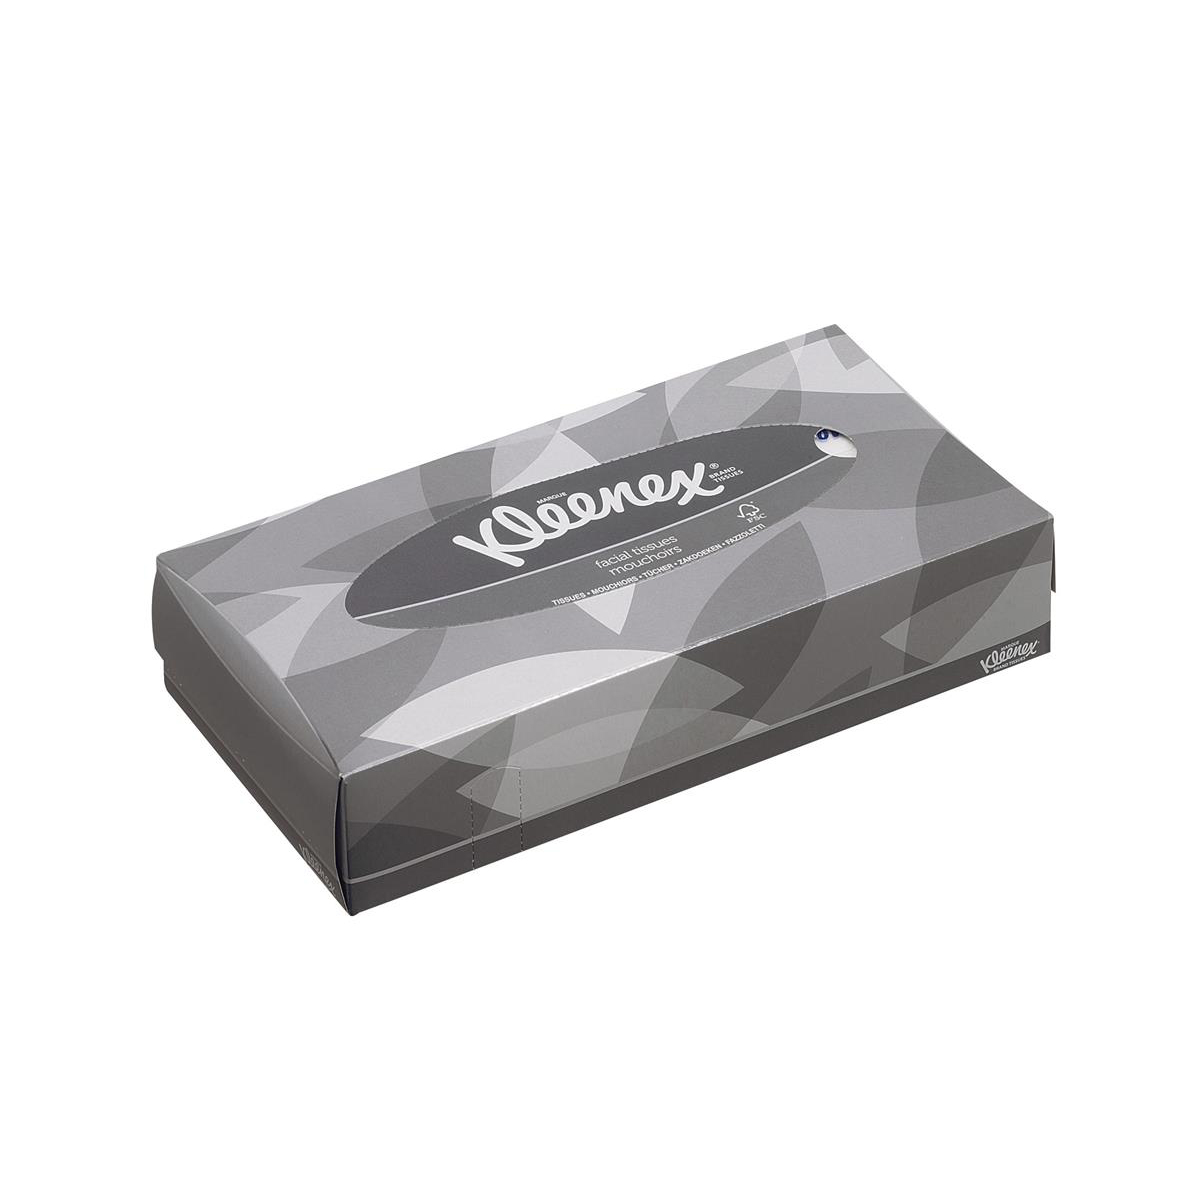 Kleenex Facial Tissues Box 2 Ply 100 Sheets White Ref 8835 21 Boxes